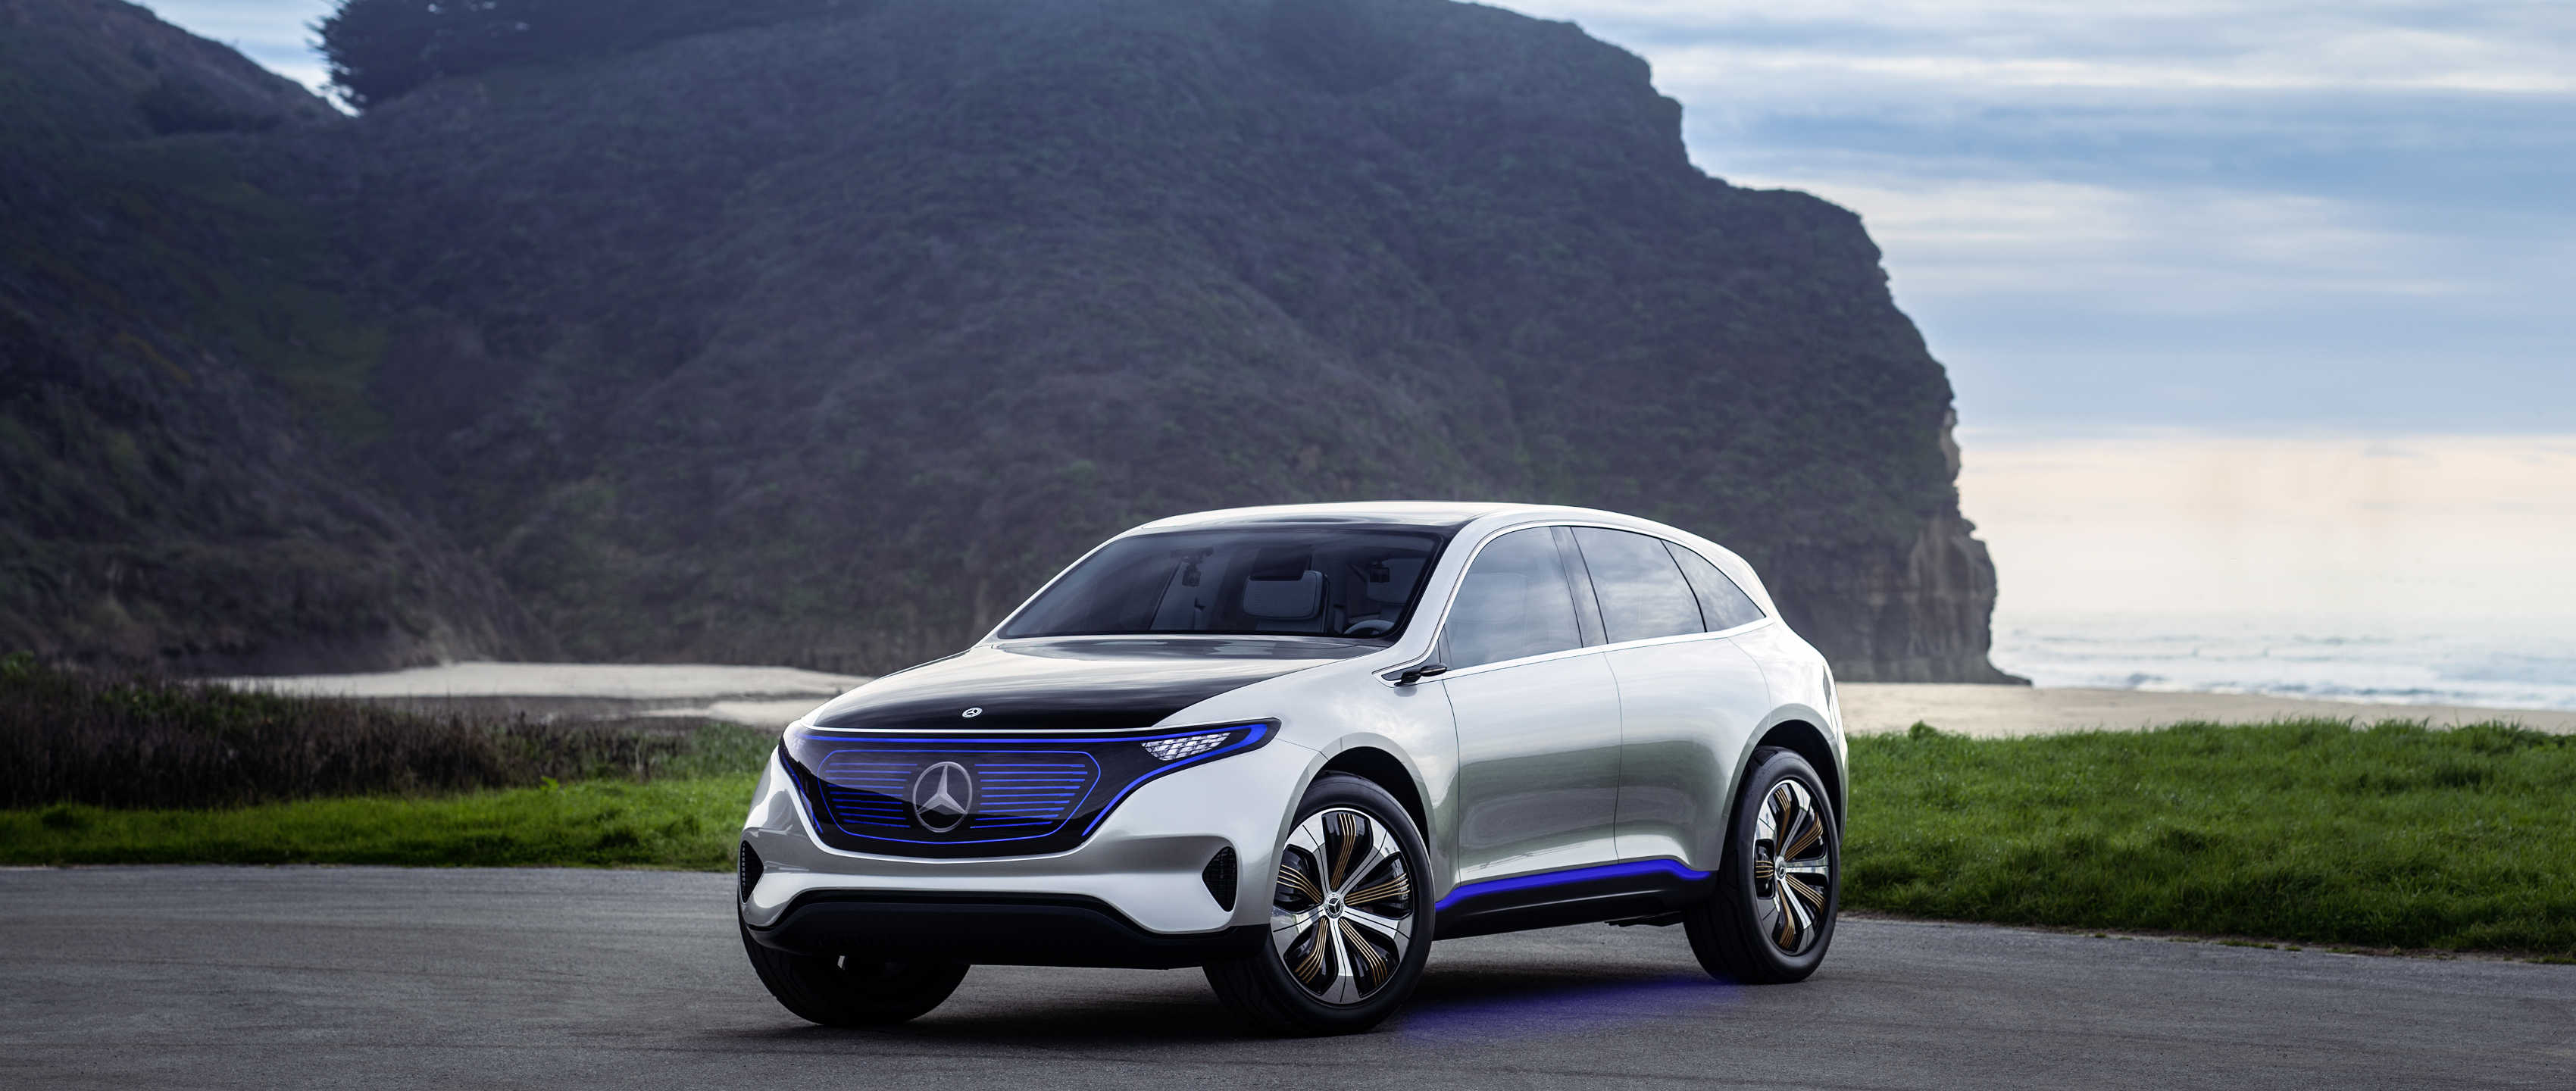 Check Out the Upcoming Mercedes-Benz Concept EQ!